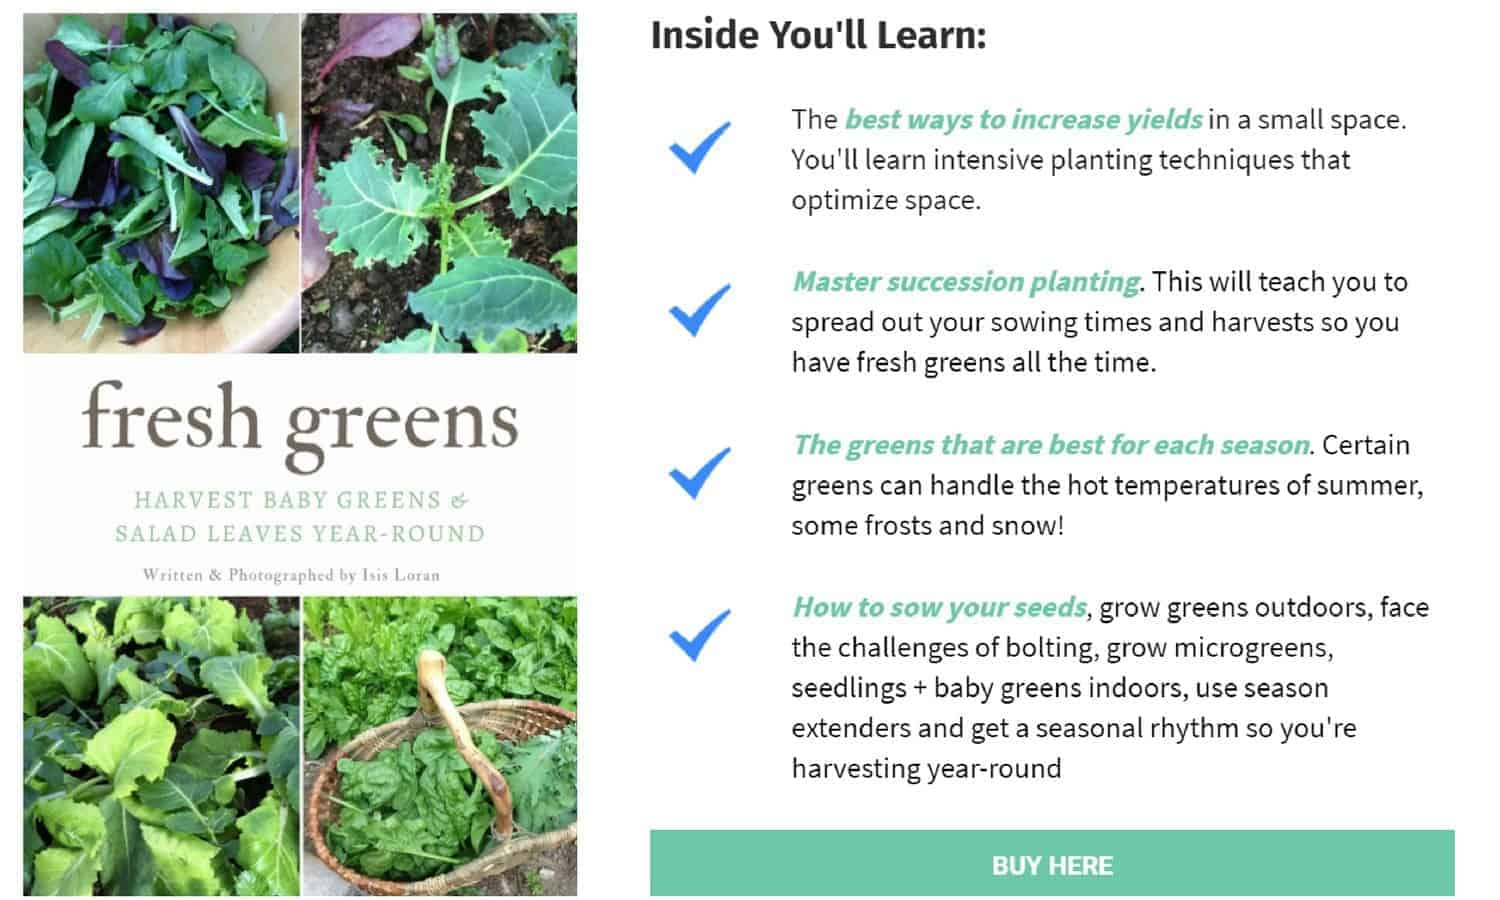 Fresh Greens book- Grow Greens & Salad Leaves Year-Round